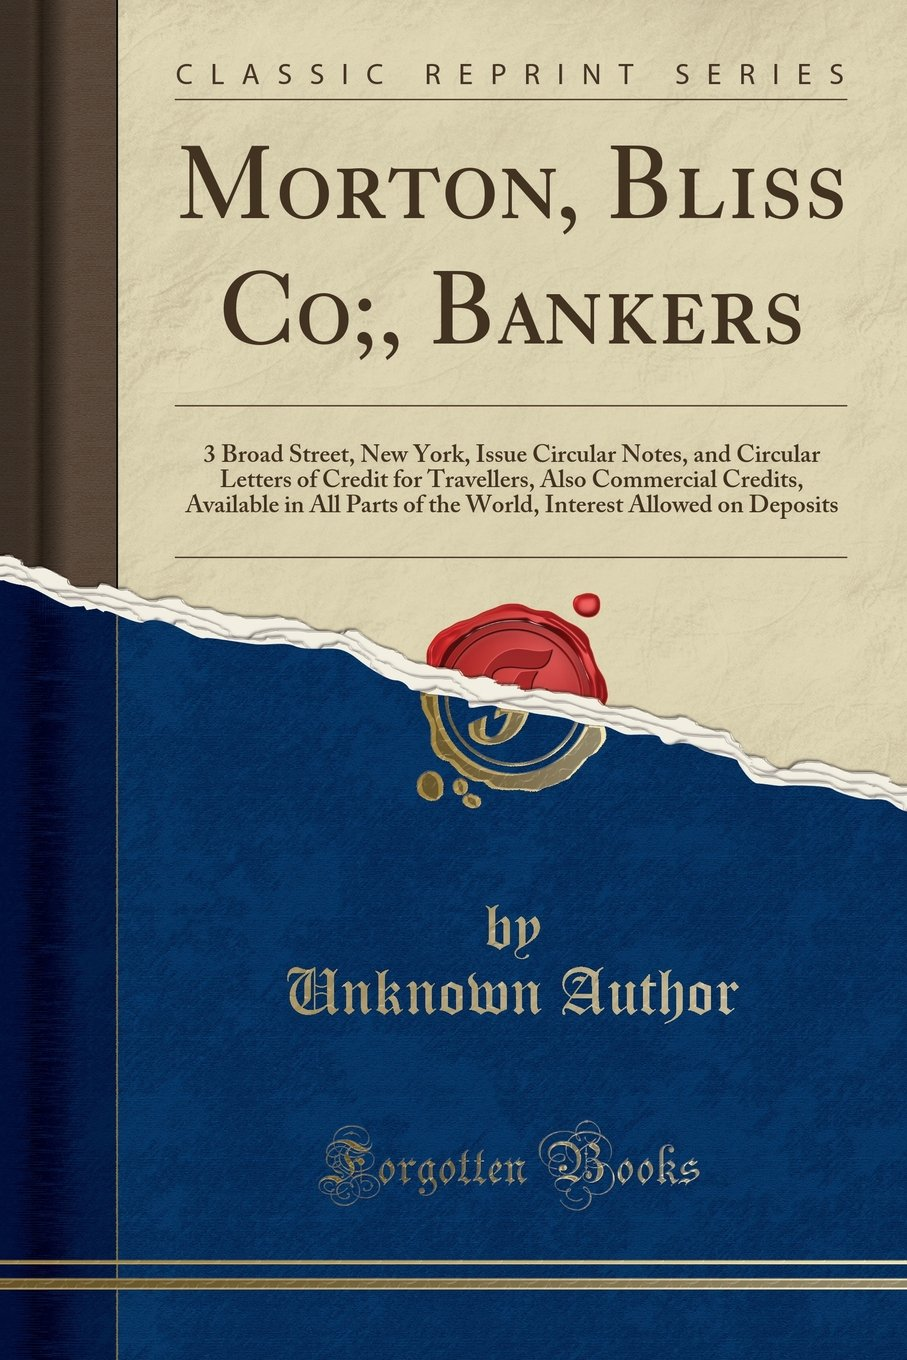 Download Morton, Bliss Co;, Bankers: 3 Broad Street, New York, Issue Circular Notes, and Circular Letters of Credit for Travellers, Also Commercial Credits, ... Allowed on Deposits (Classic Reprint) ebook